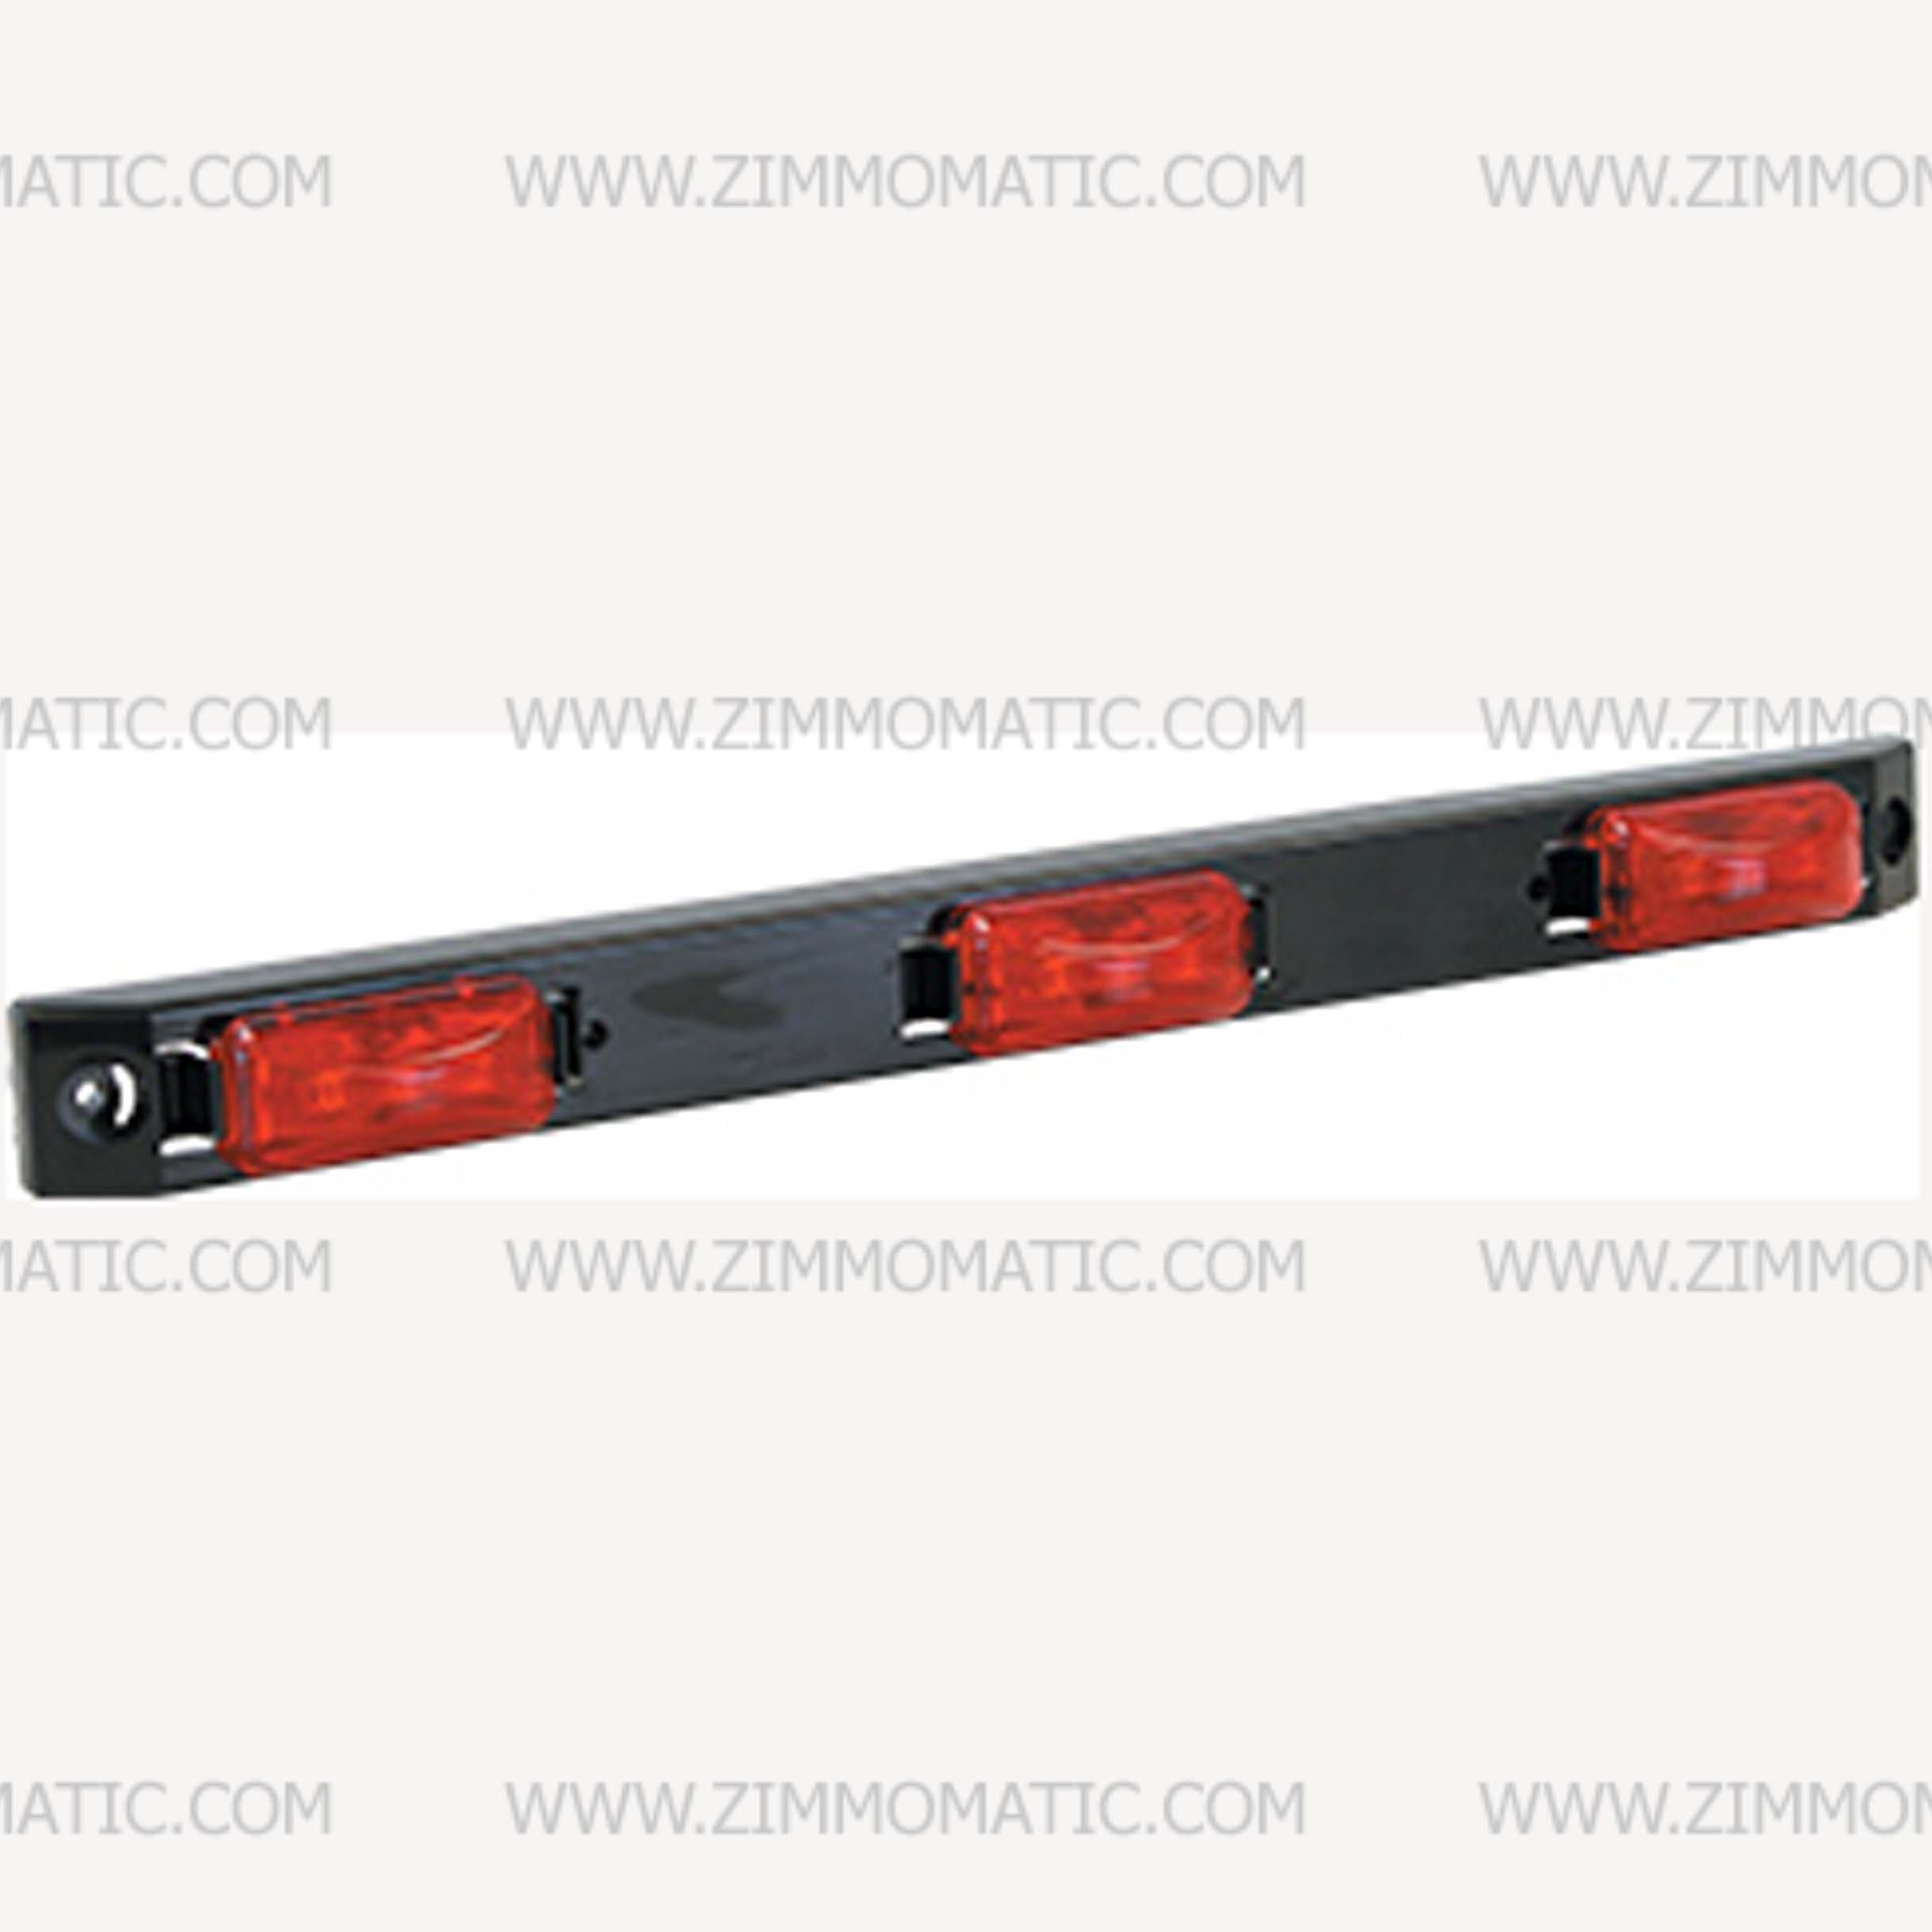 lightbar, 9 led red, plastic